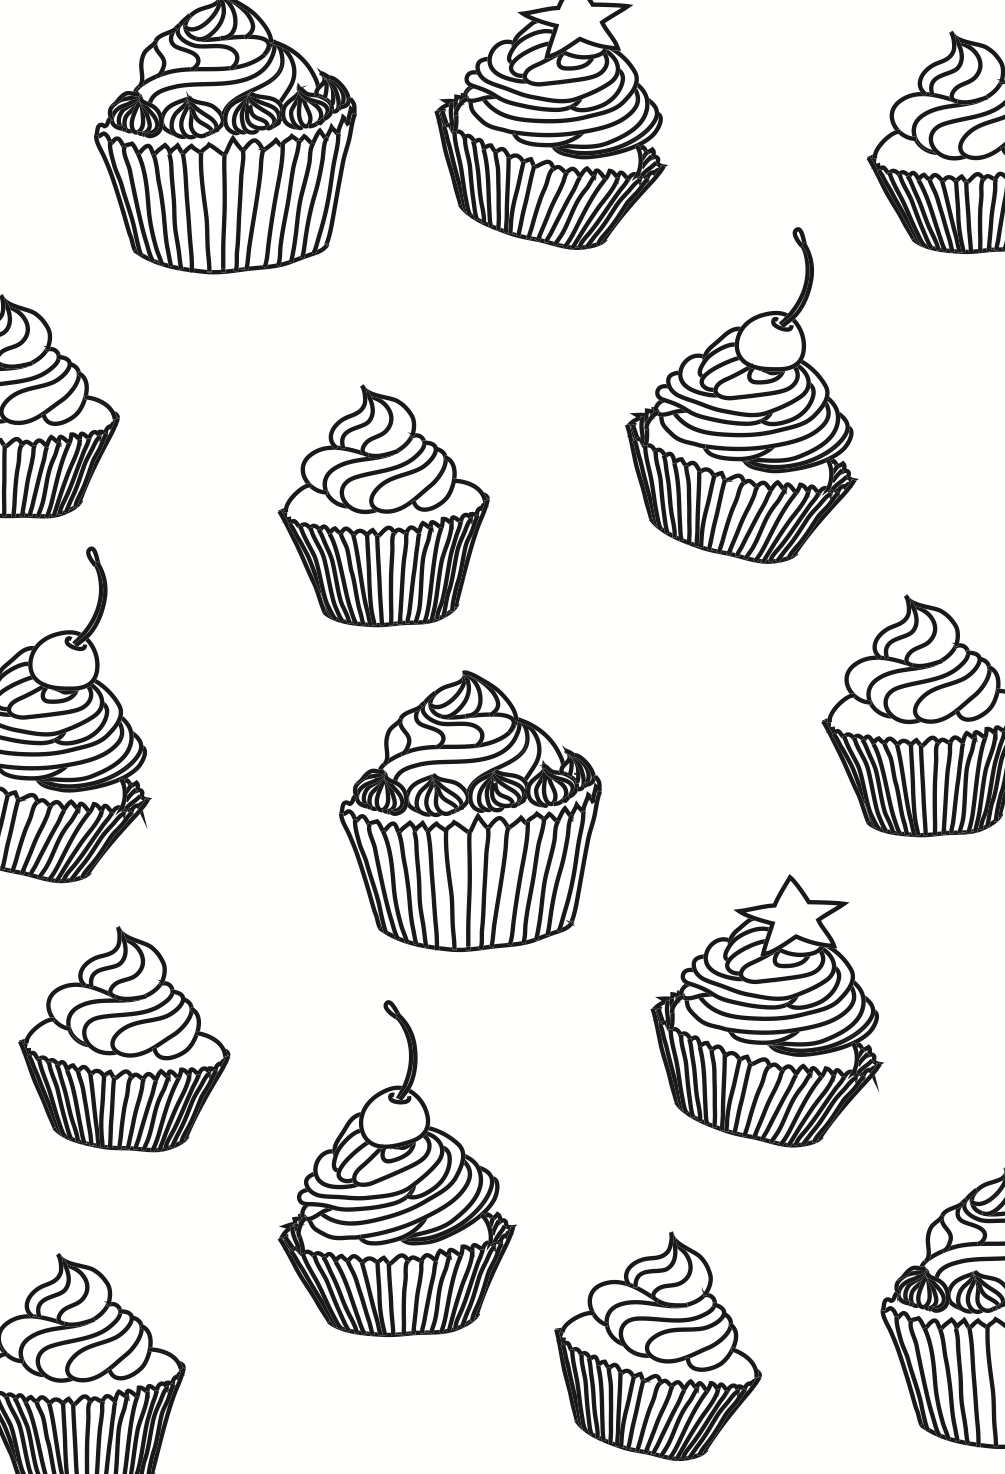 cupcakes colouring page